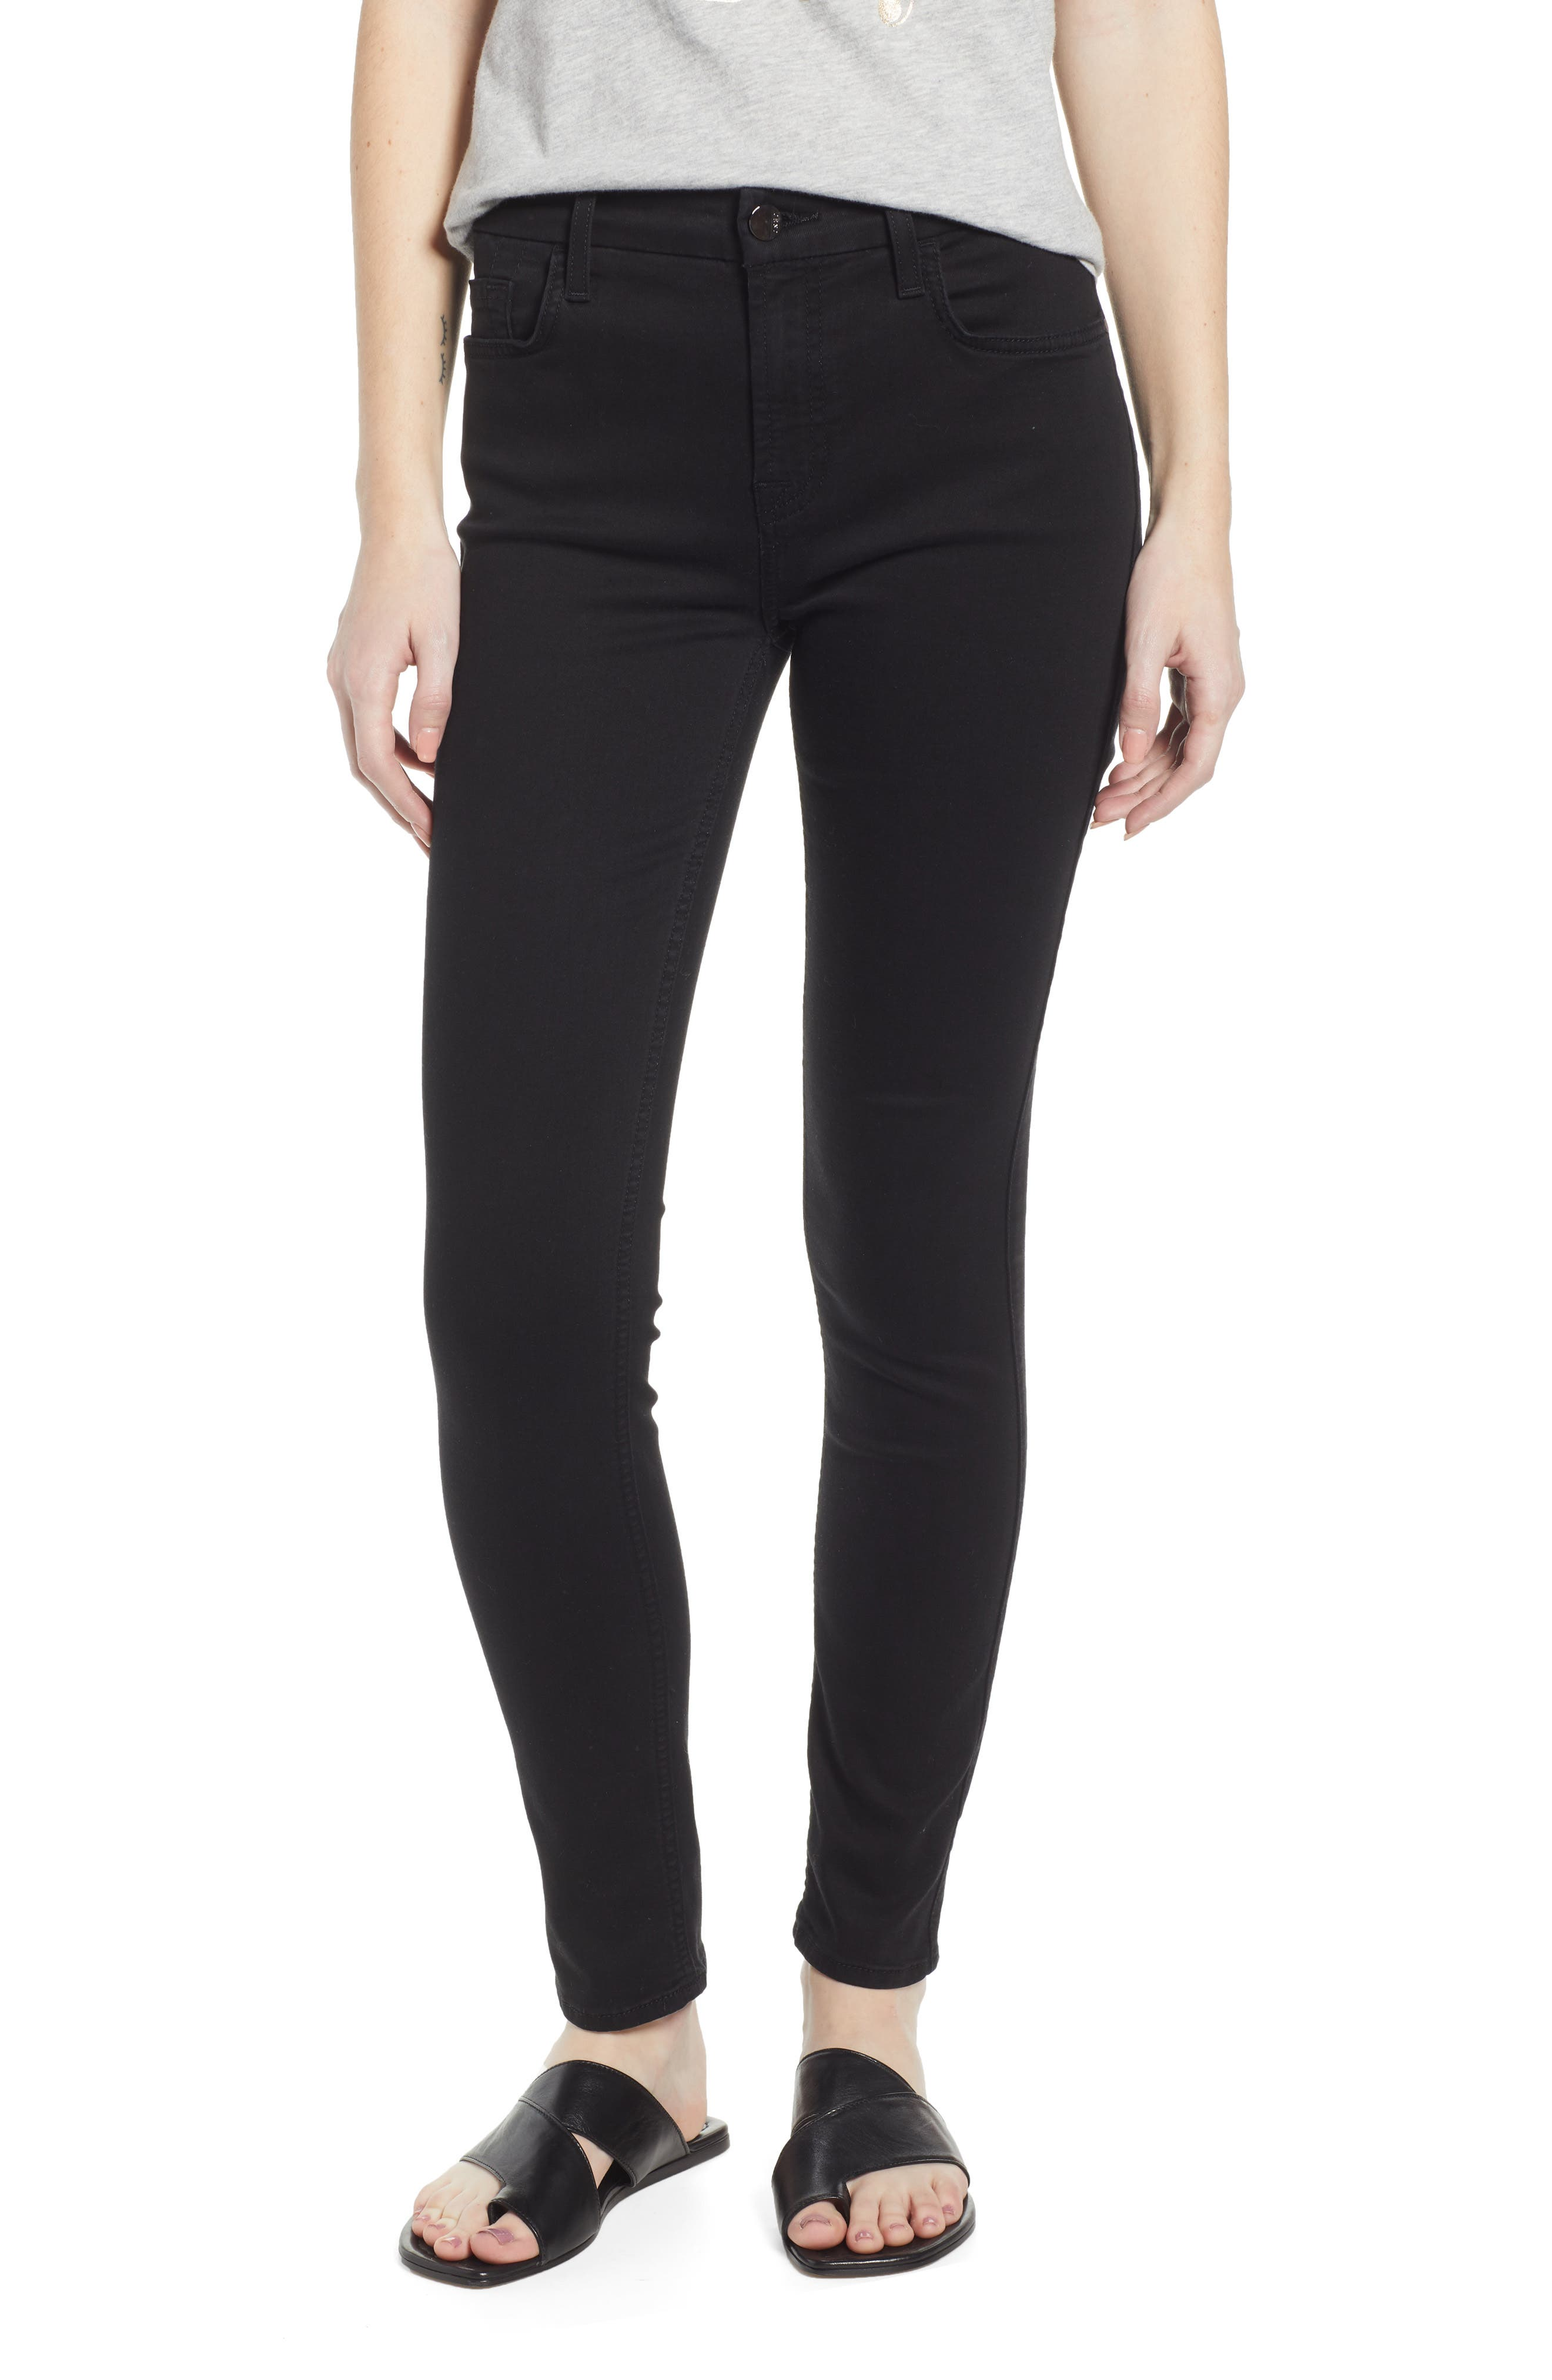 JEN7 BY 7 FOR ALL MANKIND, Skinny Jeans, Main thumbnail 1, color, CLASSIC BLACK NOIR